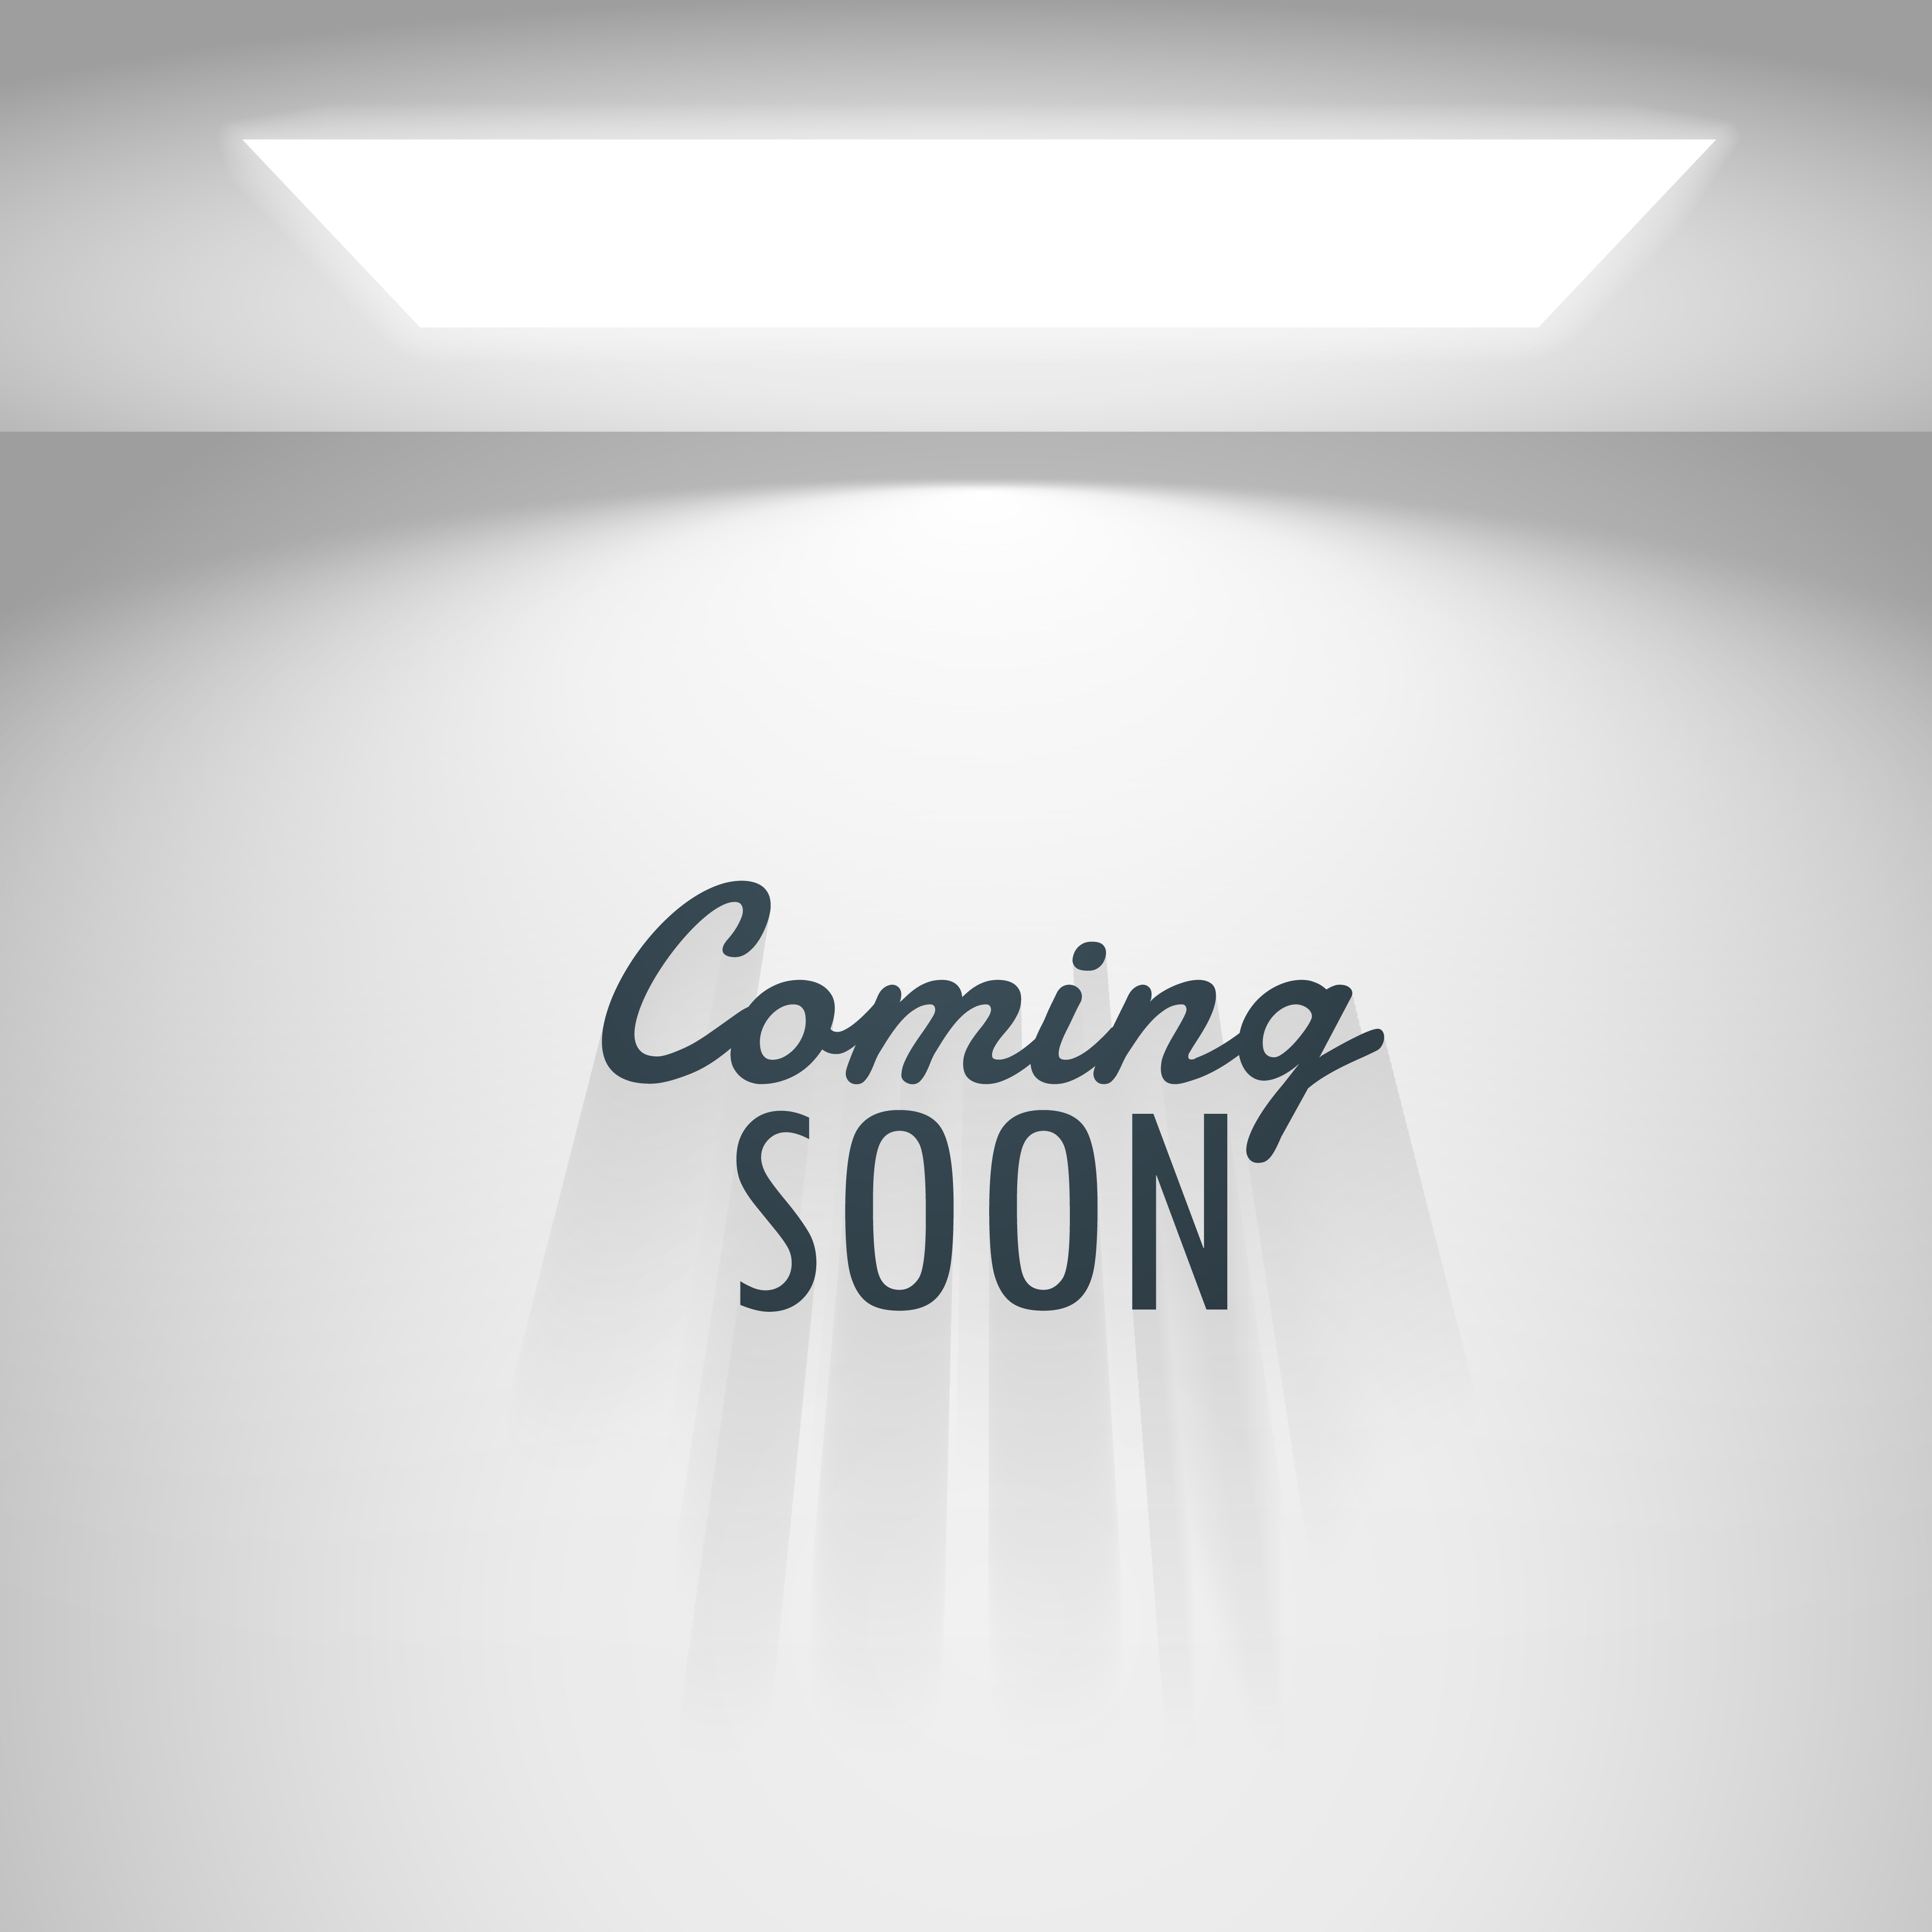 Light reflective cooming soon wallpaper #3709